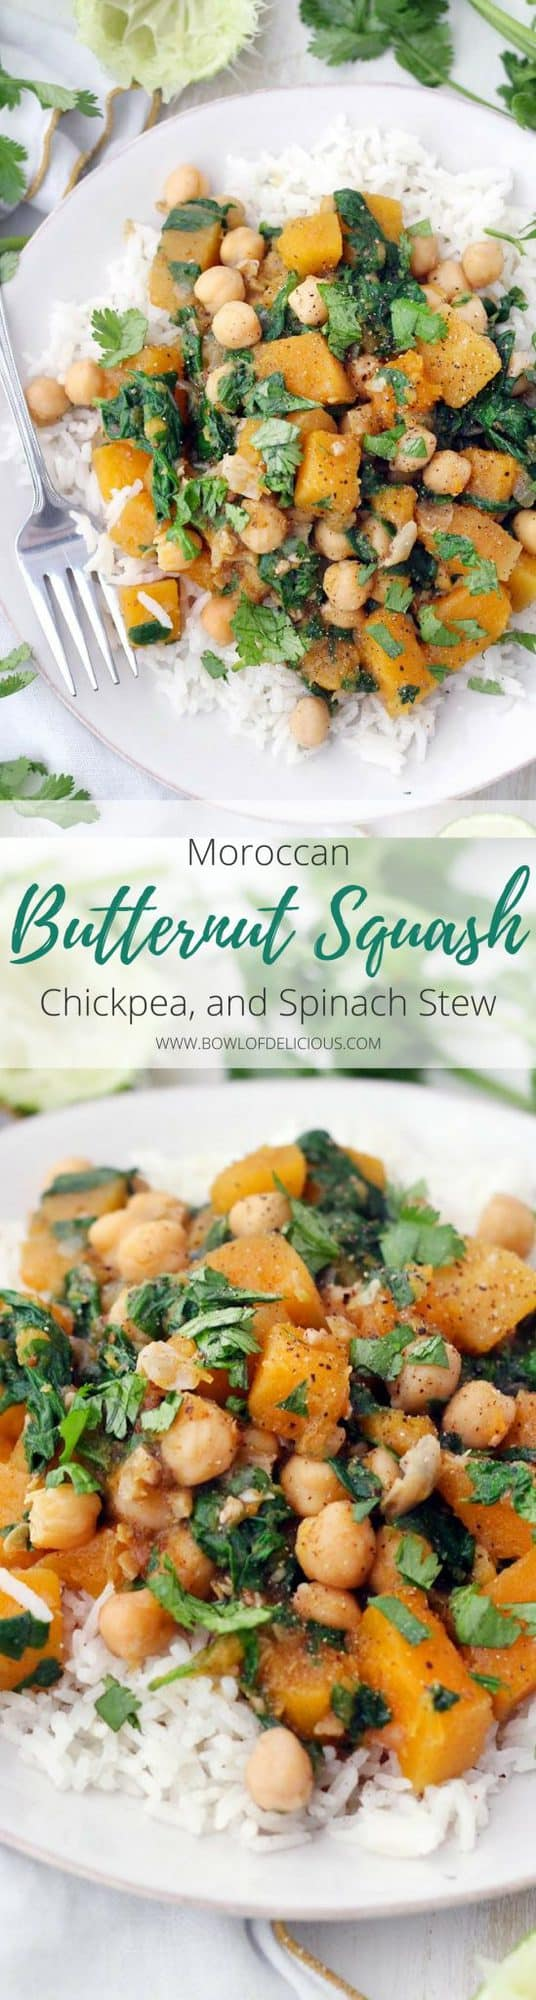 Moroccan Butternut Squash, Chickpea, and Spinach Stew | This spicy, healthy, vegan stew is packed full of butternut squash, chickpeas, spinach, and warm moroccan flavors. It's healthy, hearty, and gluten-free. Make in bulk and freeze the extra! #RasElHanout #VeganRecipes #ButternutSquash #Chickpeas #VeganStews #GlutenFree #GrainFree #DairyFree